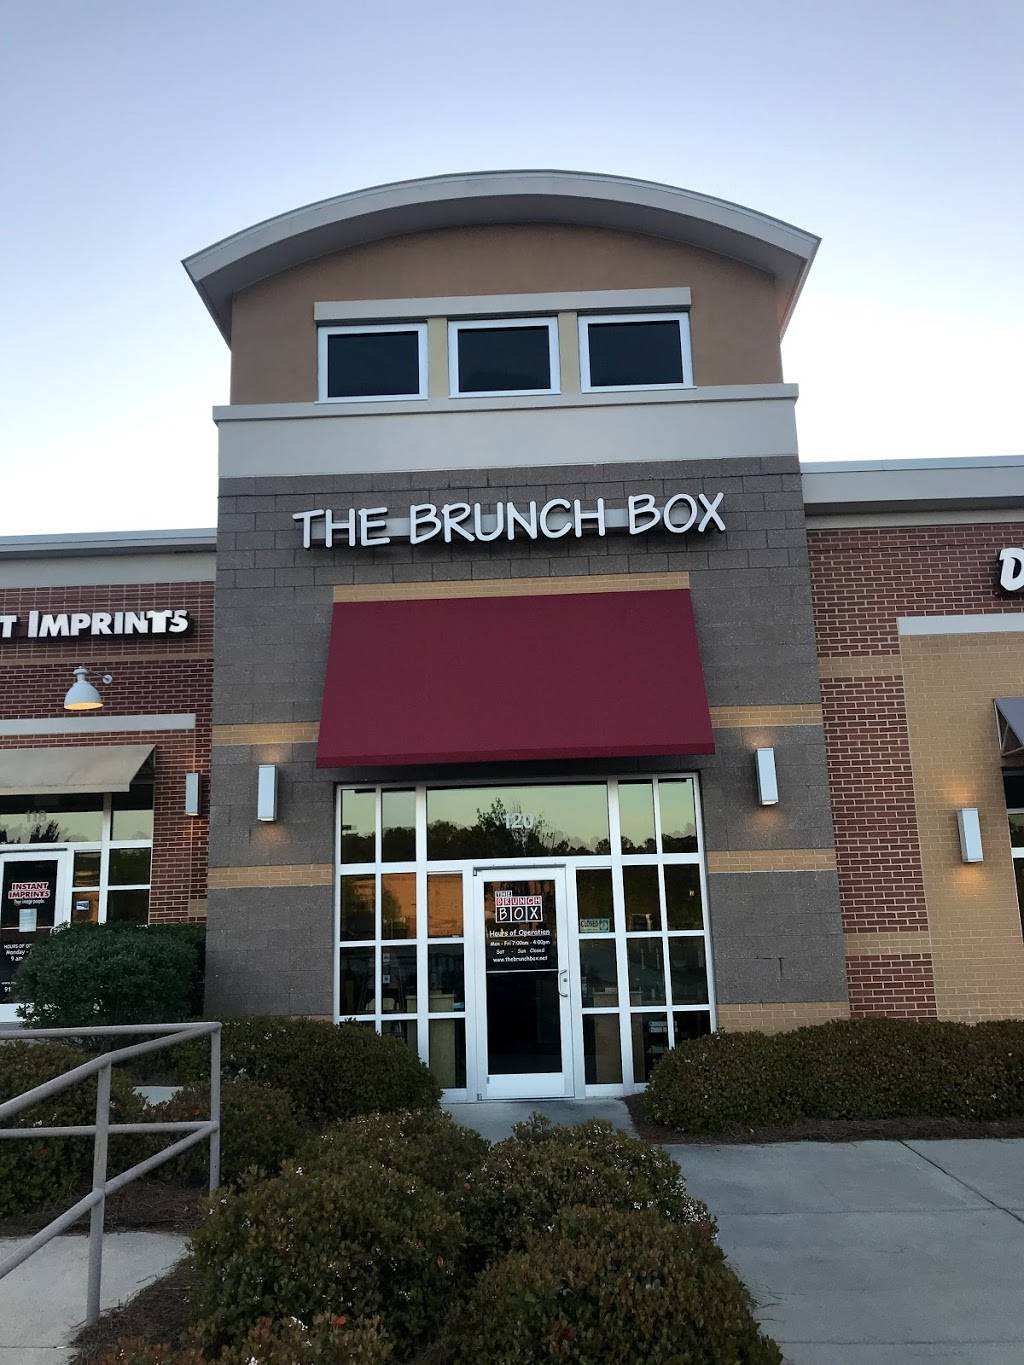 The Brunch Box   cafe   10970 Chapel Hill Rd #120, Morrisville, NC 27560, USA   9193807276 OR +1 919-380-7276